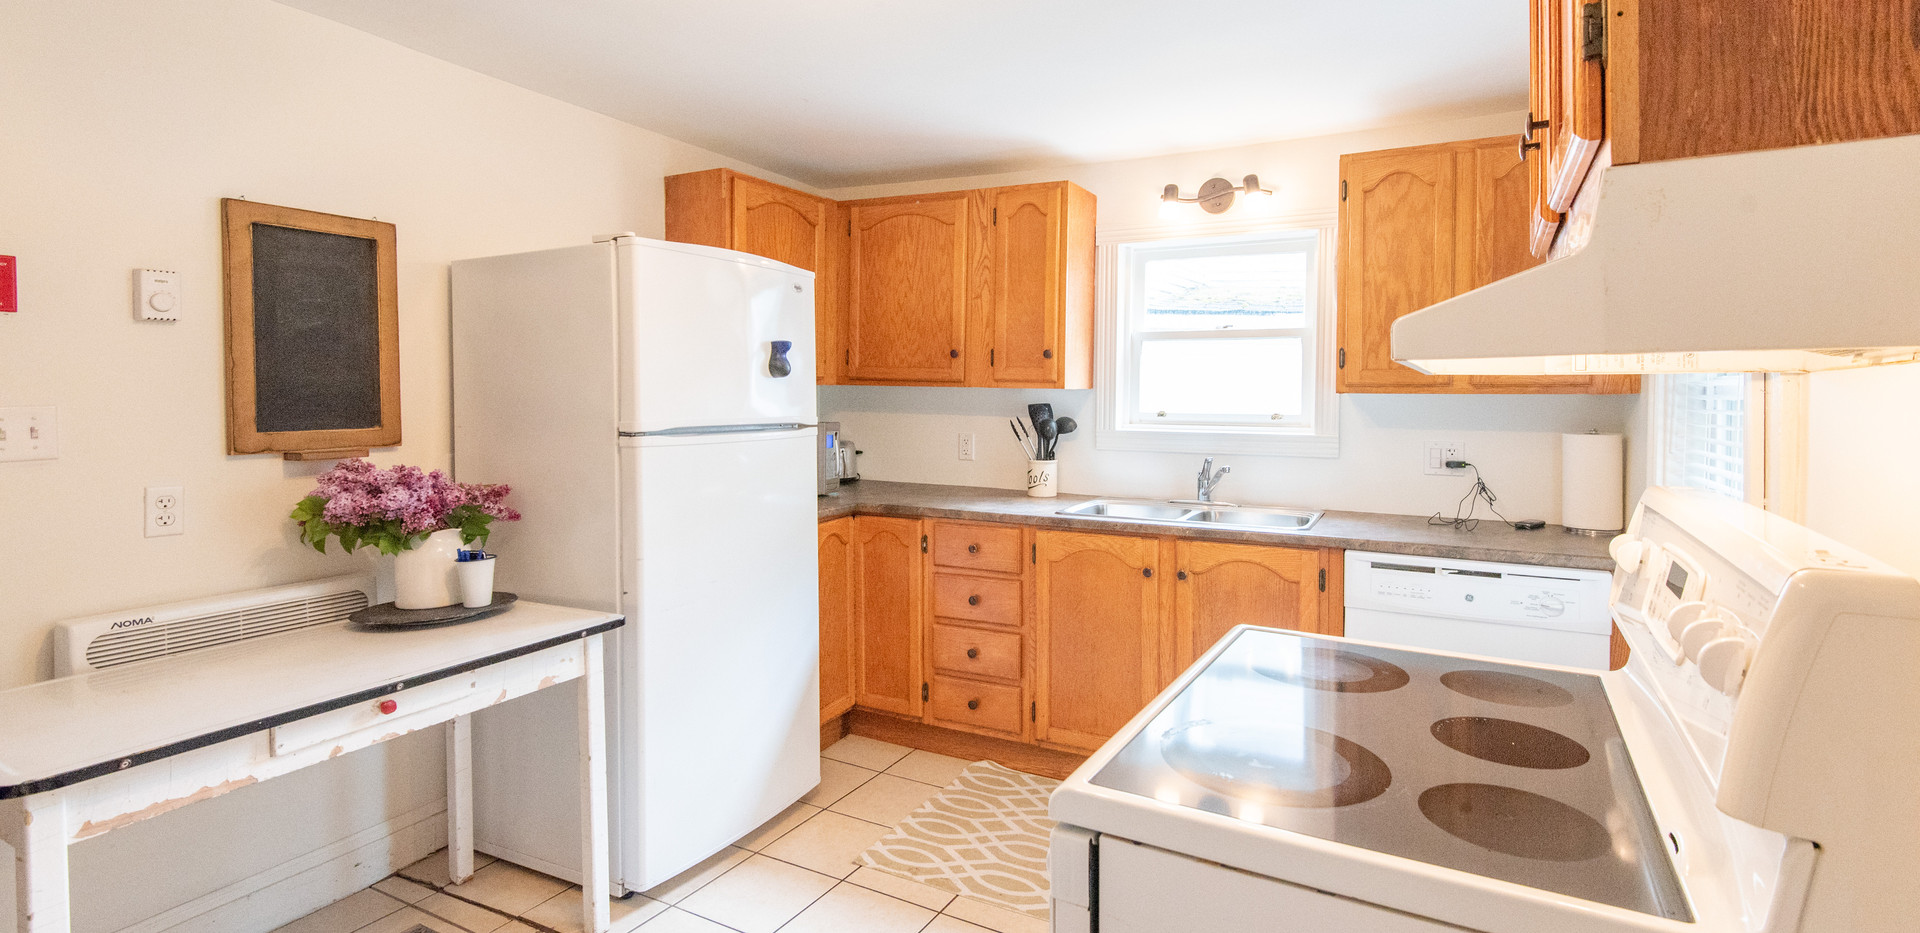 Full Kitchen with stove, fridge, dishwasher and all cookware you will need.